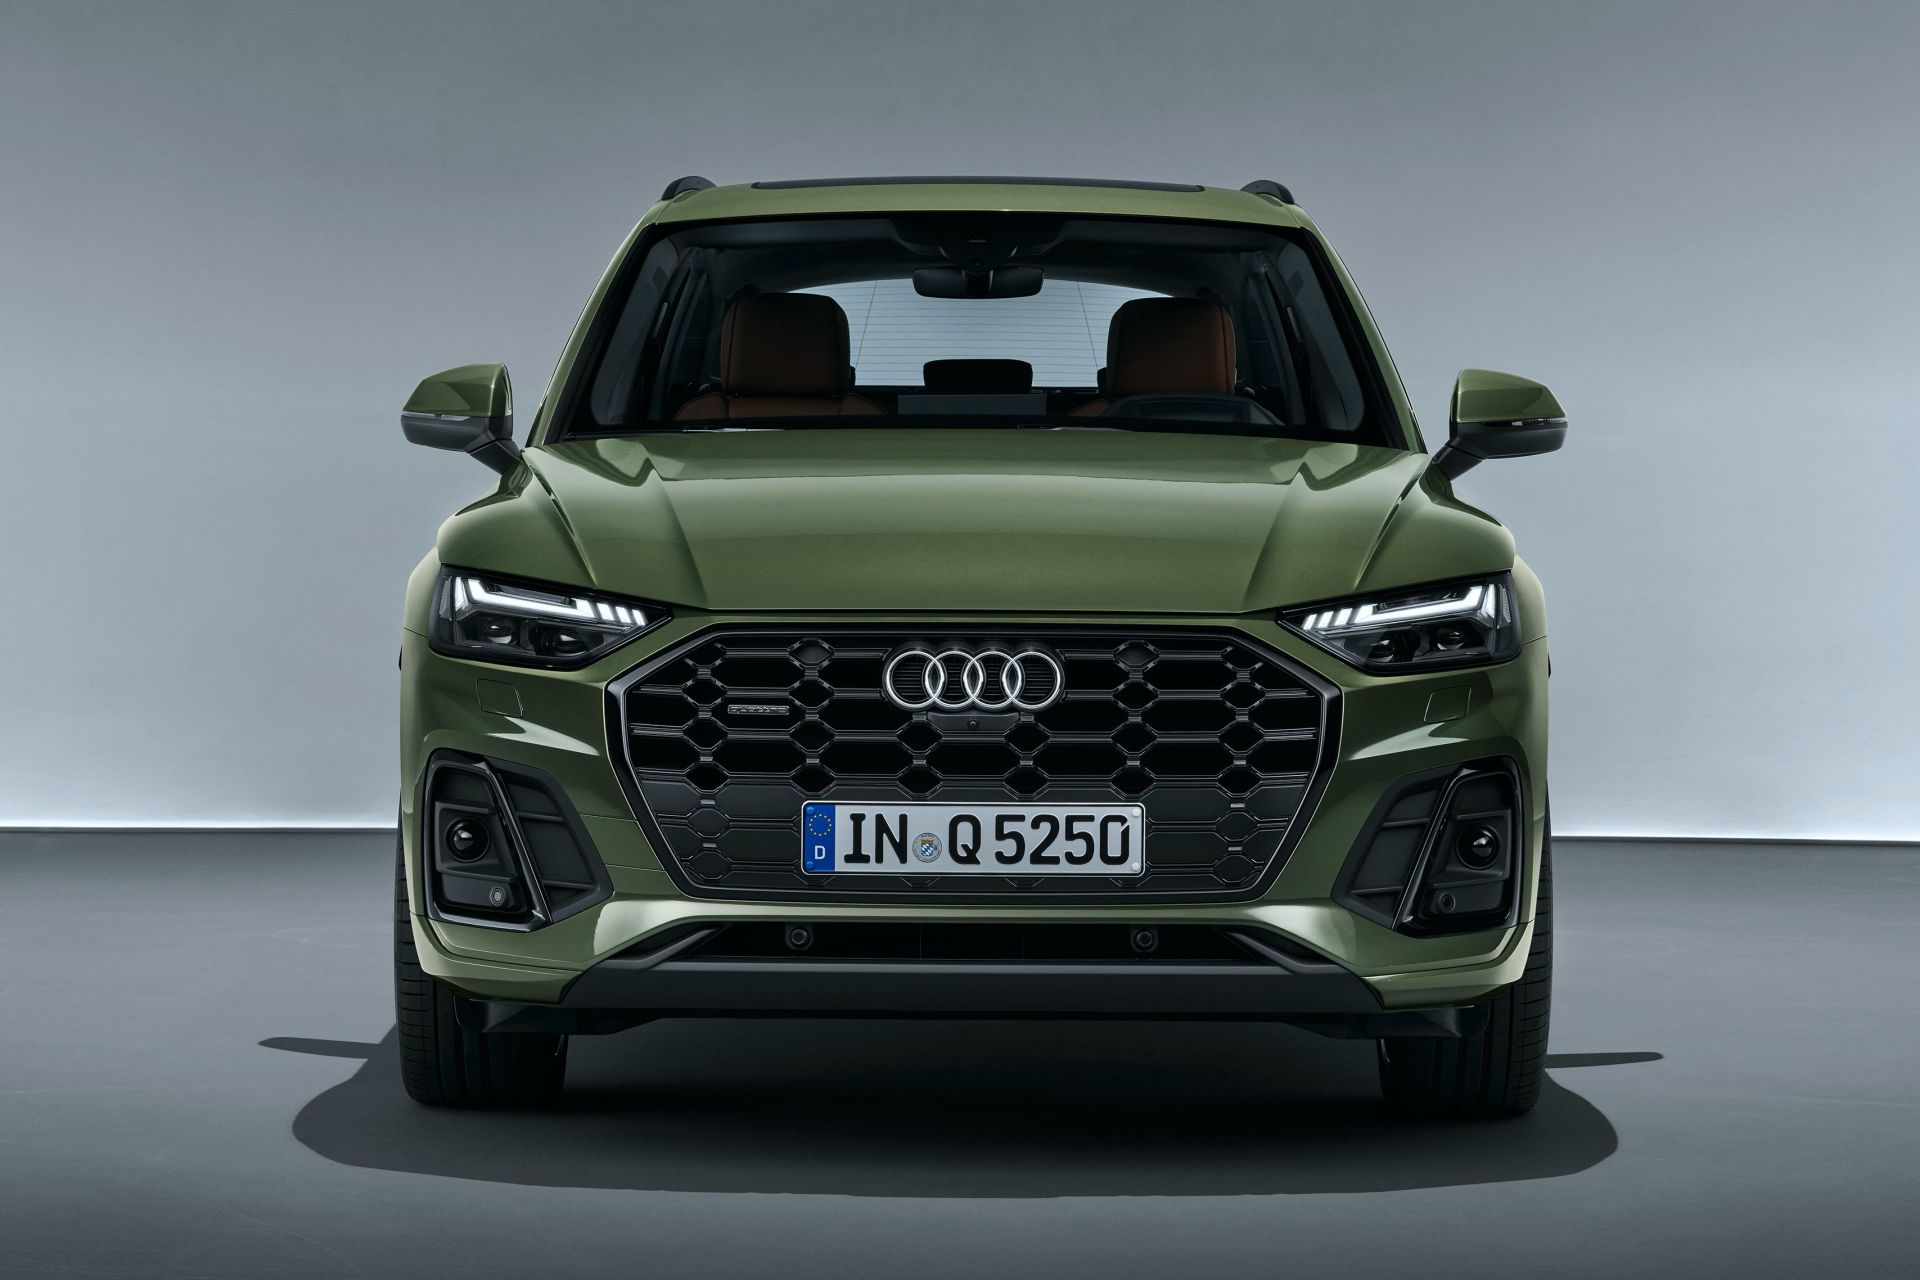 Is Audi Finally Prepping A Hot Rs Version Of The Q5 Carscoops